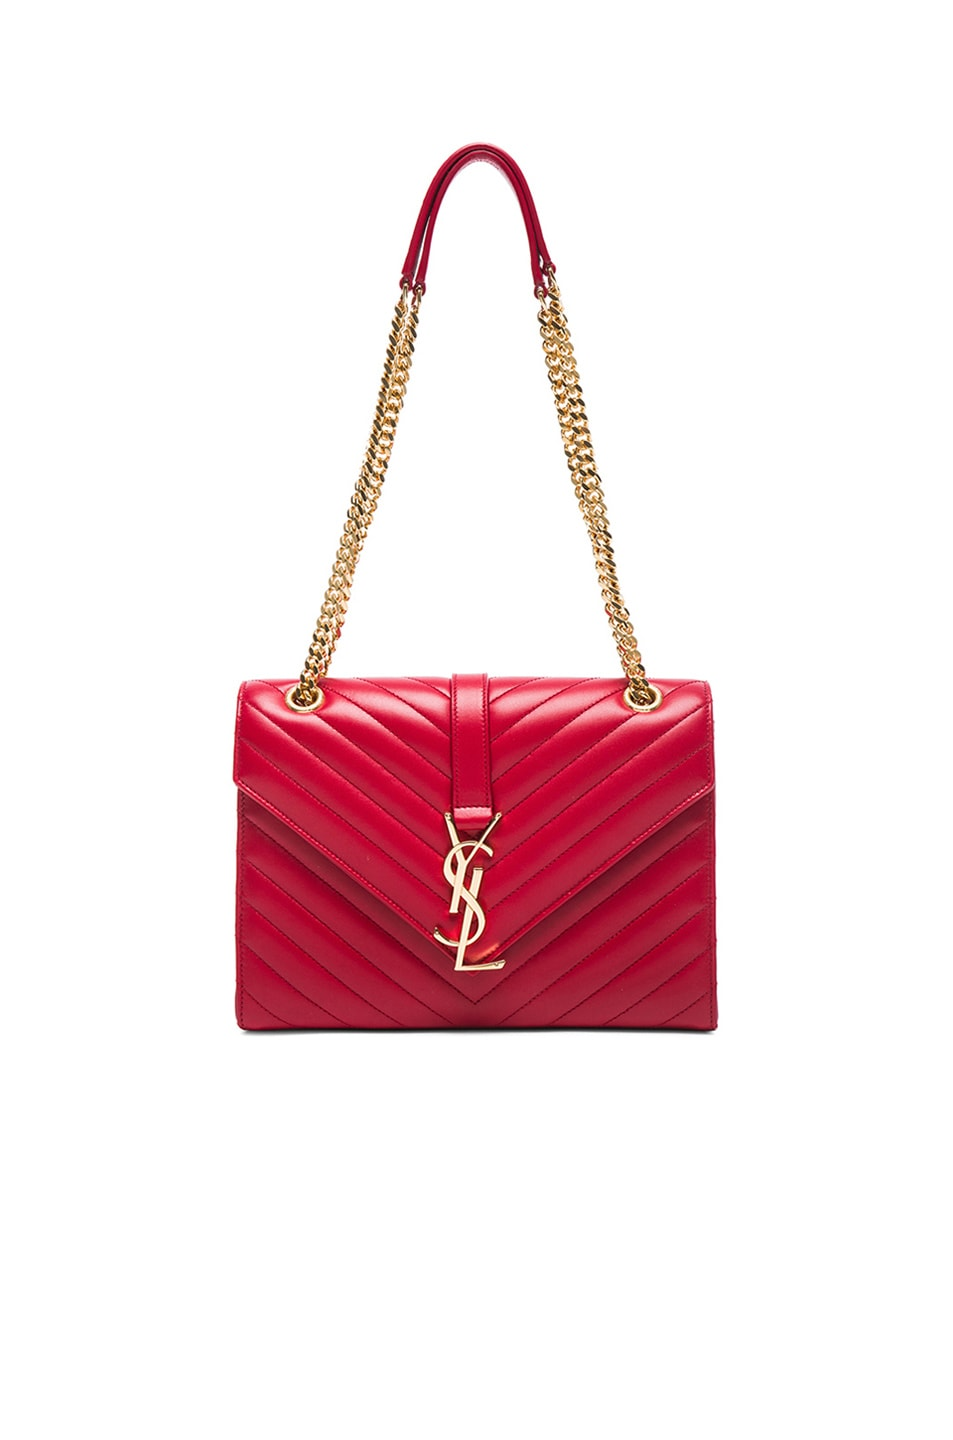 ysl purses replica - classic medium kate monogram saint laurent satchel in red grain de ...